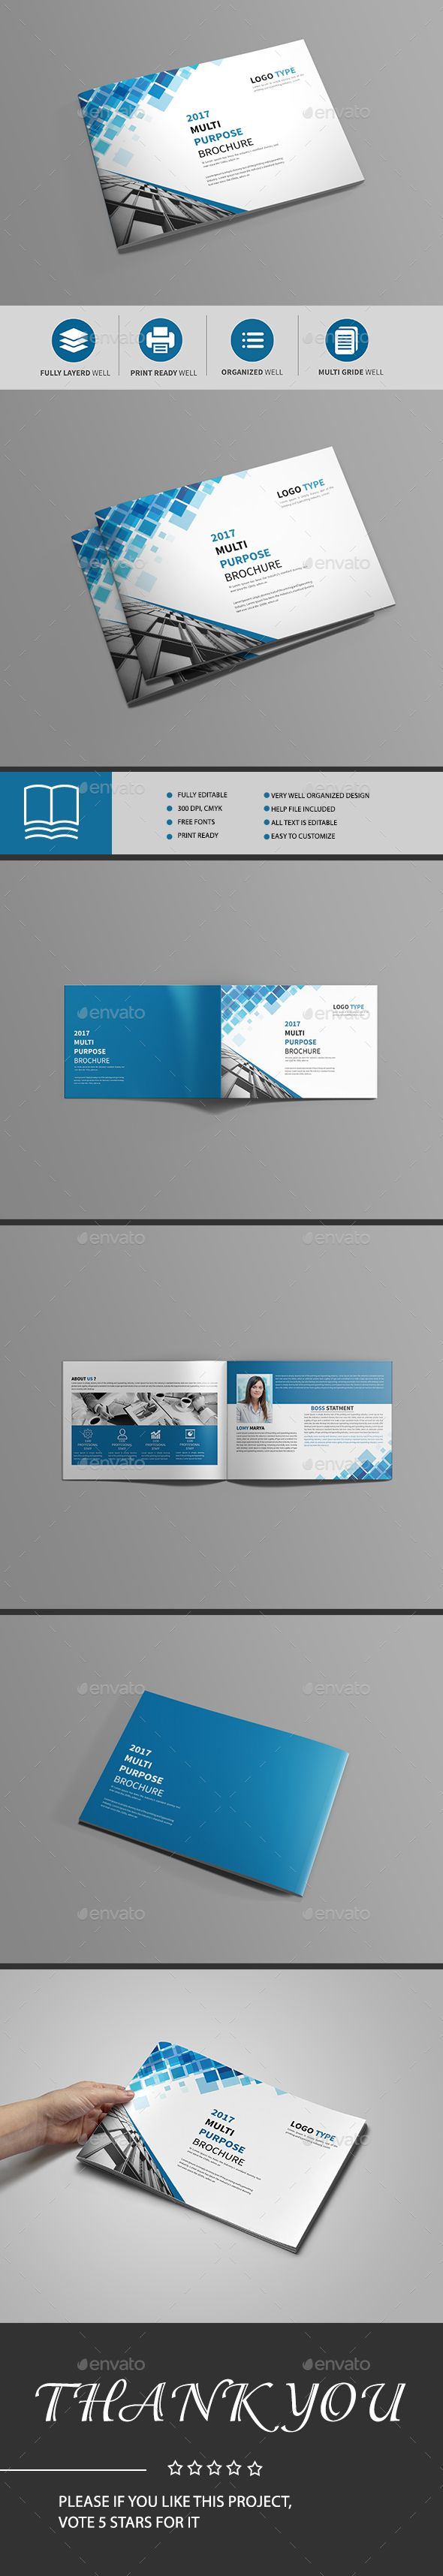 bi fold brochure template indesign template clean customizable download - Bi Fold Brochure Template Indesign Free